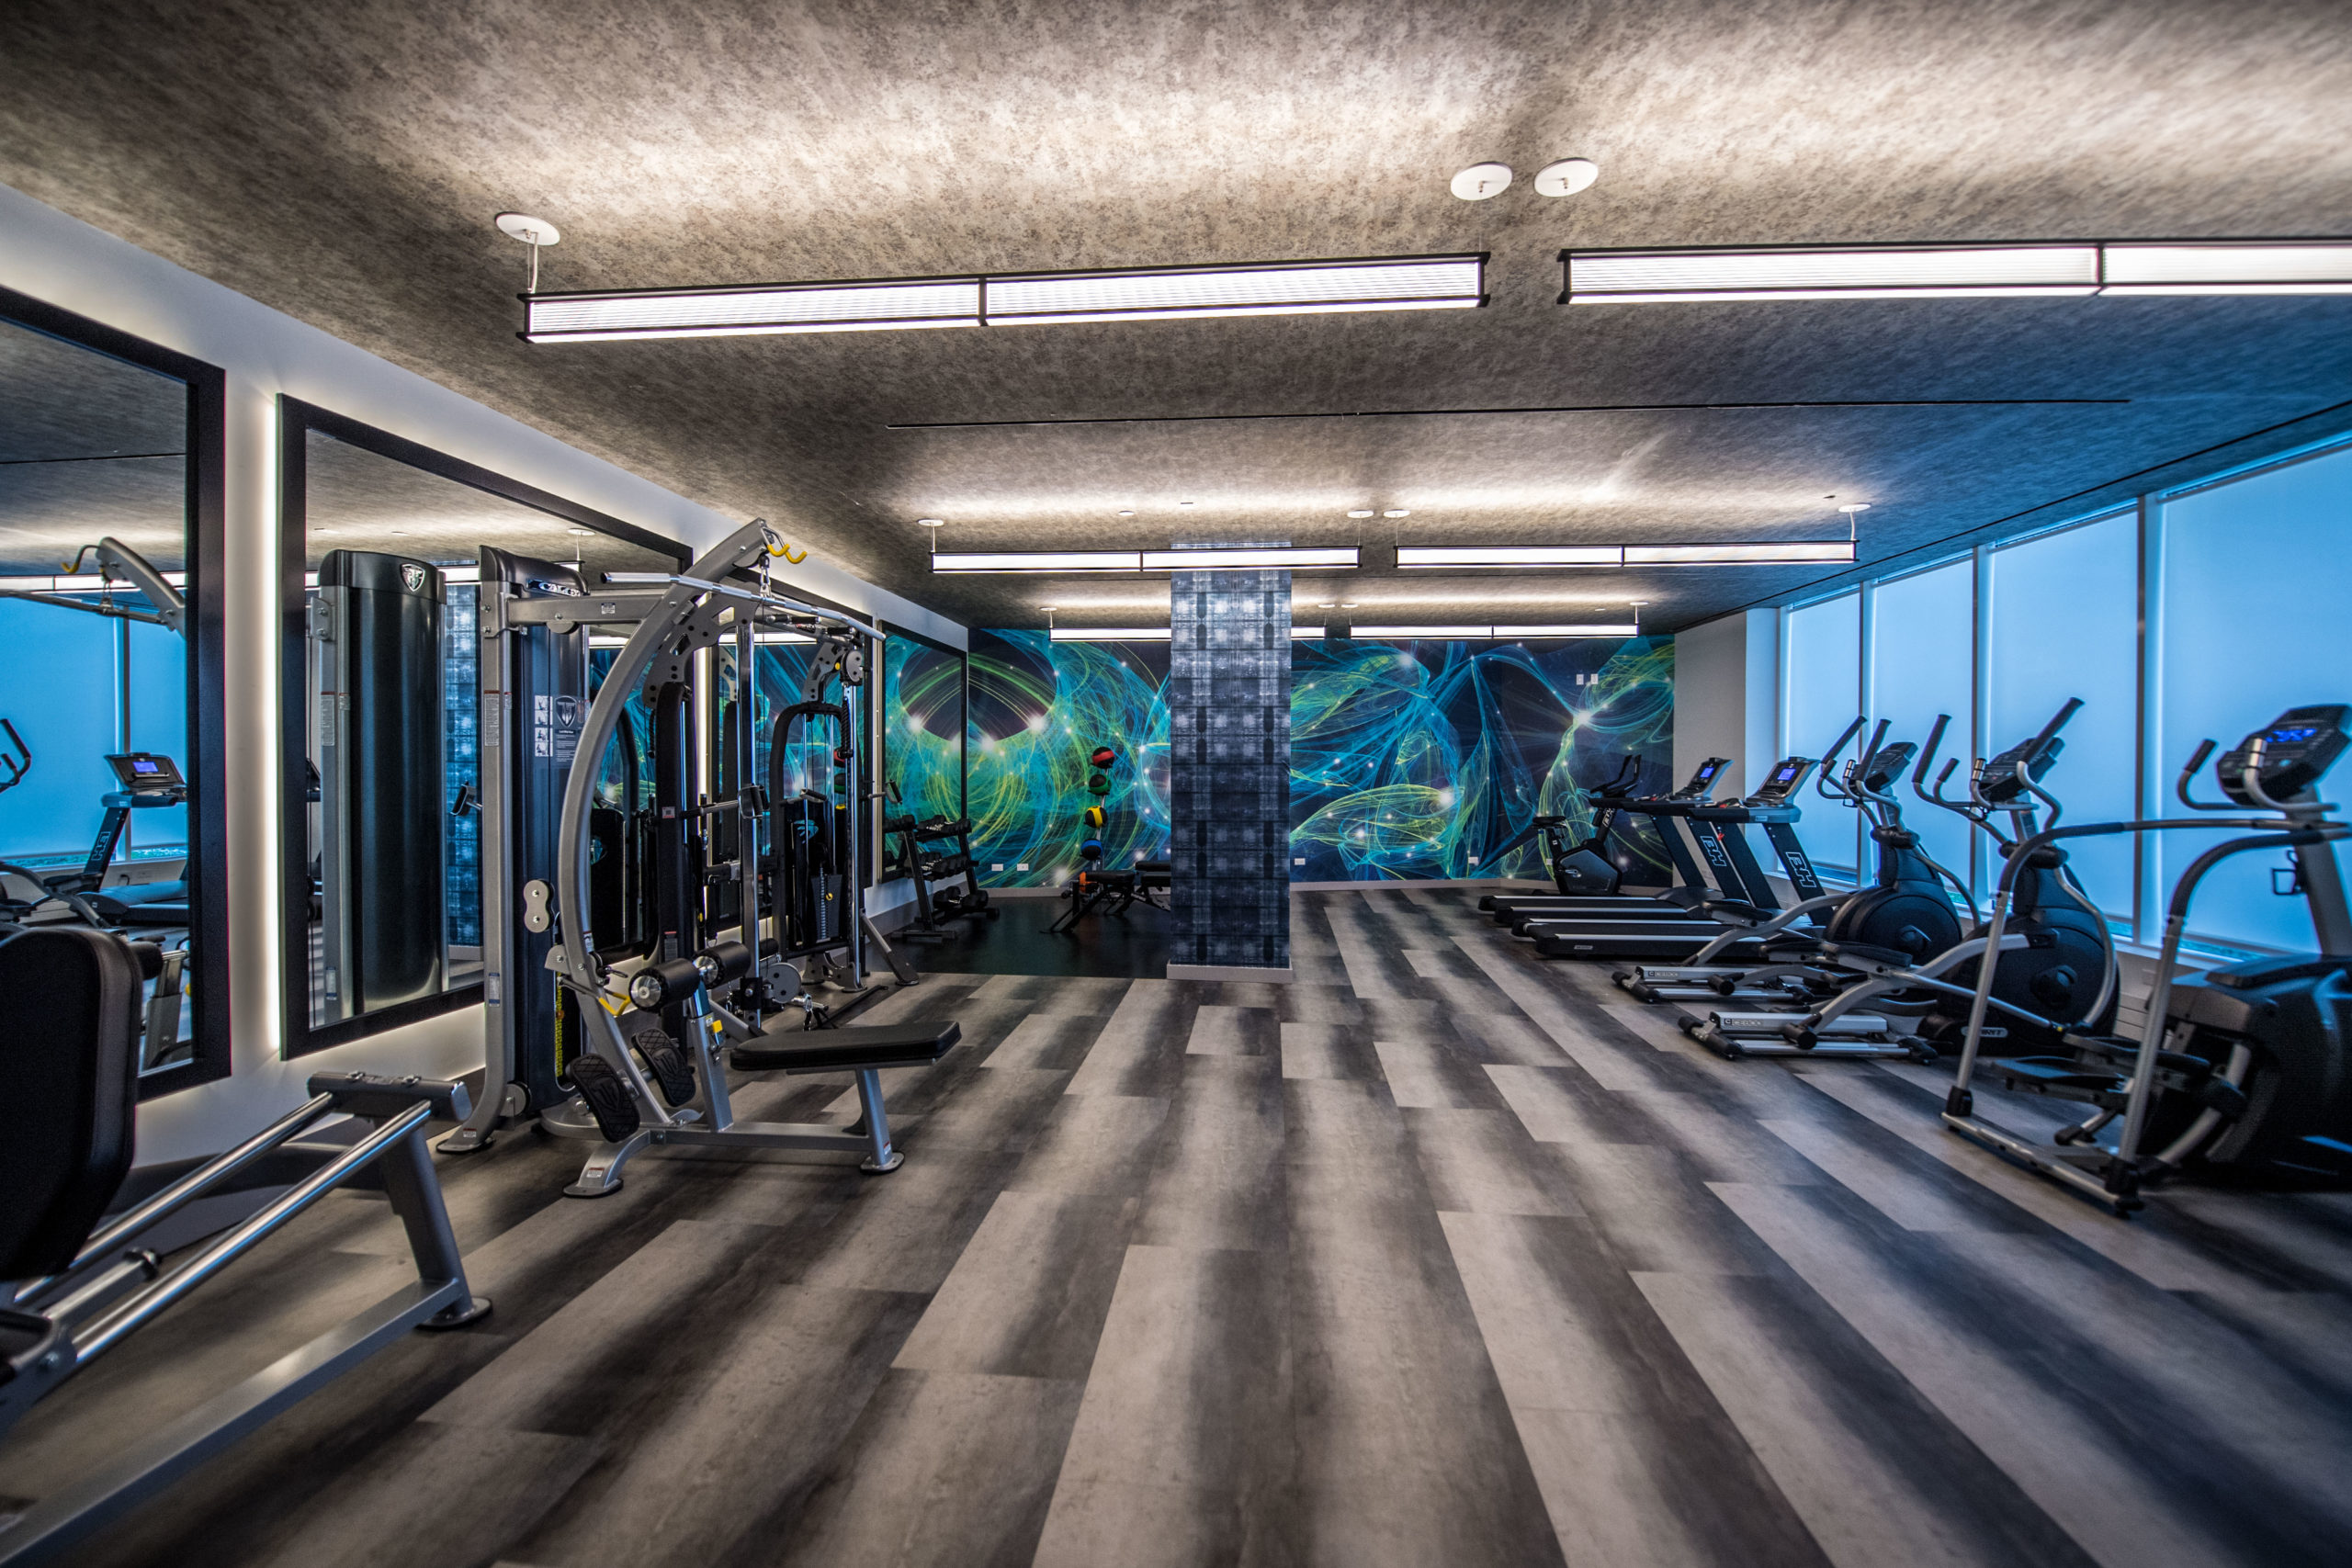 Fitness center with modern equipment at the Vitagraph in Brooklyn